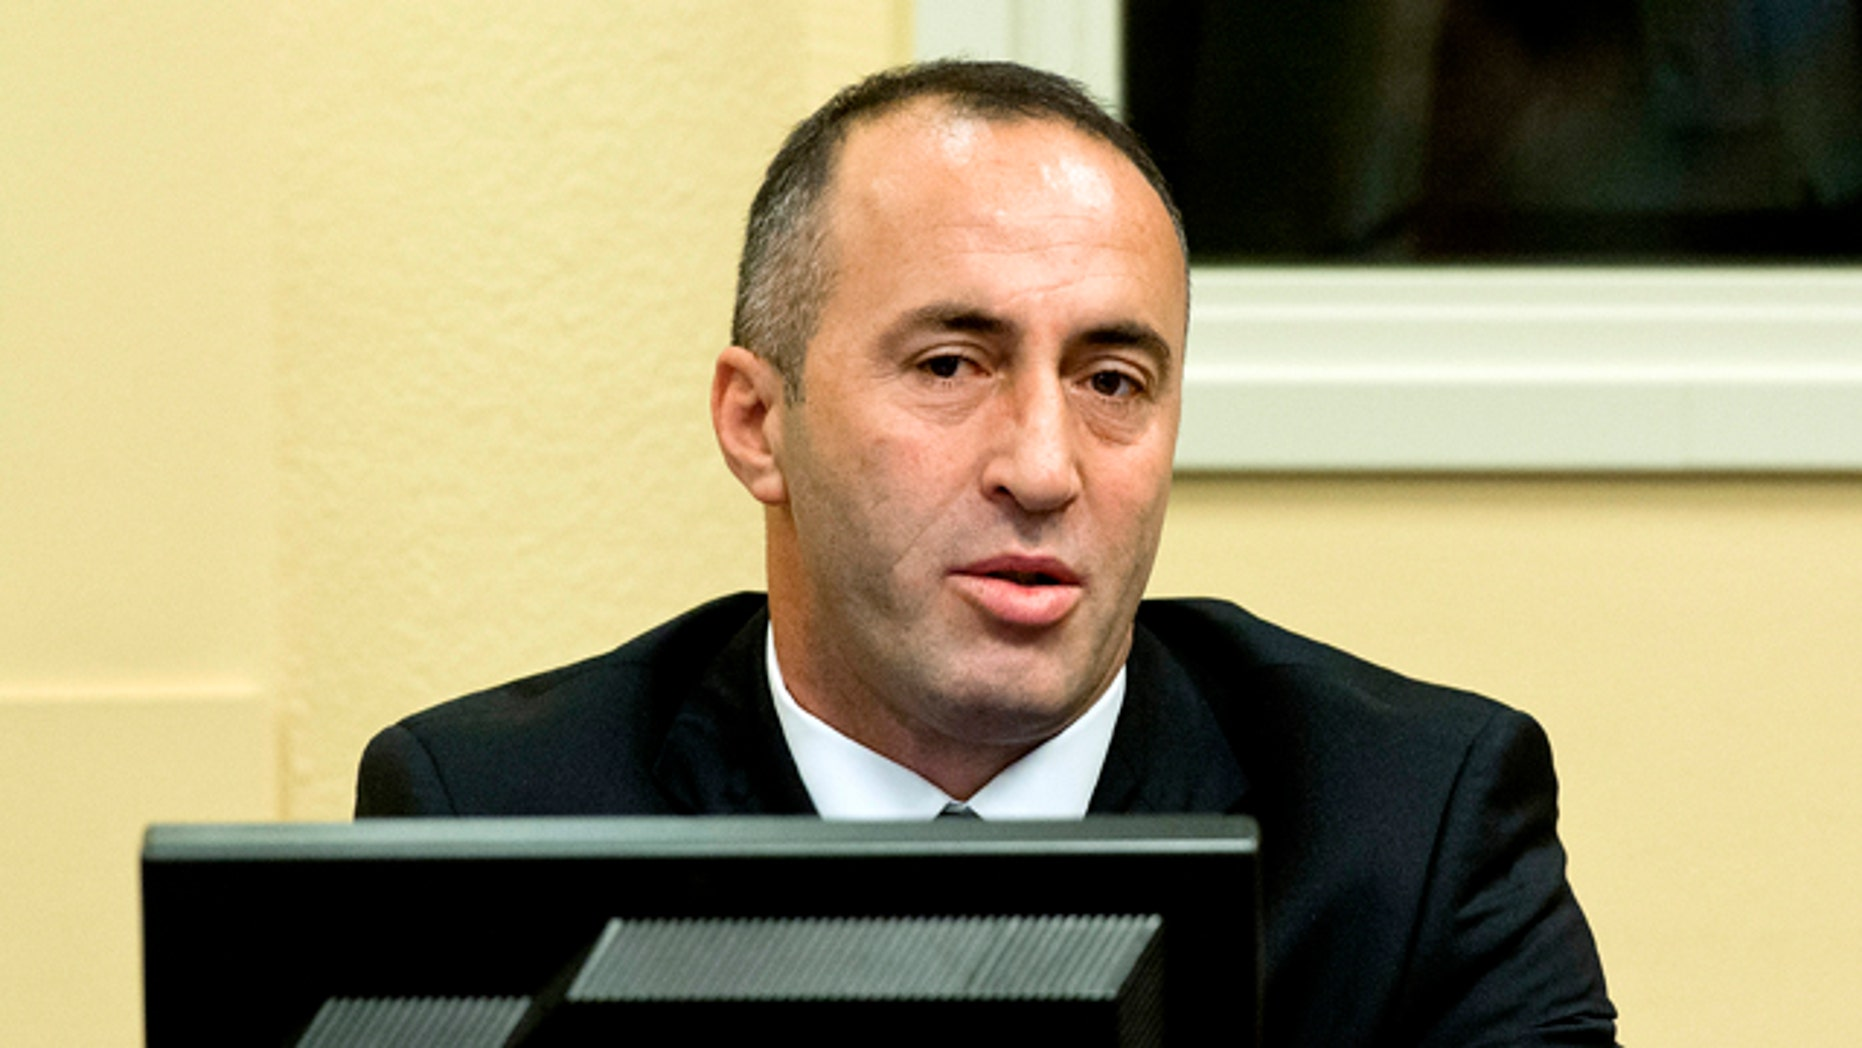 Nov. 29, 2012: Former Kosovo Prime Minister Ramush Haradinaj awaits his verdict at the courtroom of the Yugoslav war crimes tribunal in The Hague, Netherlands.